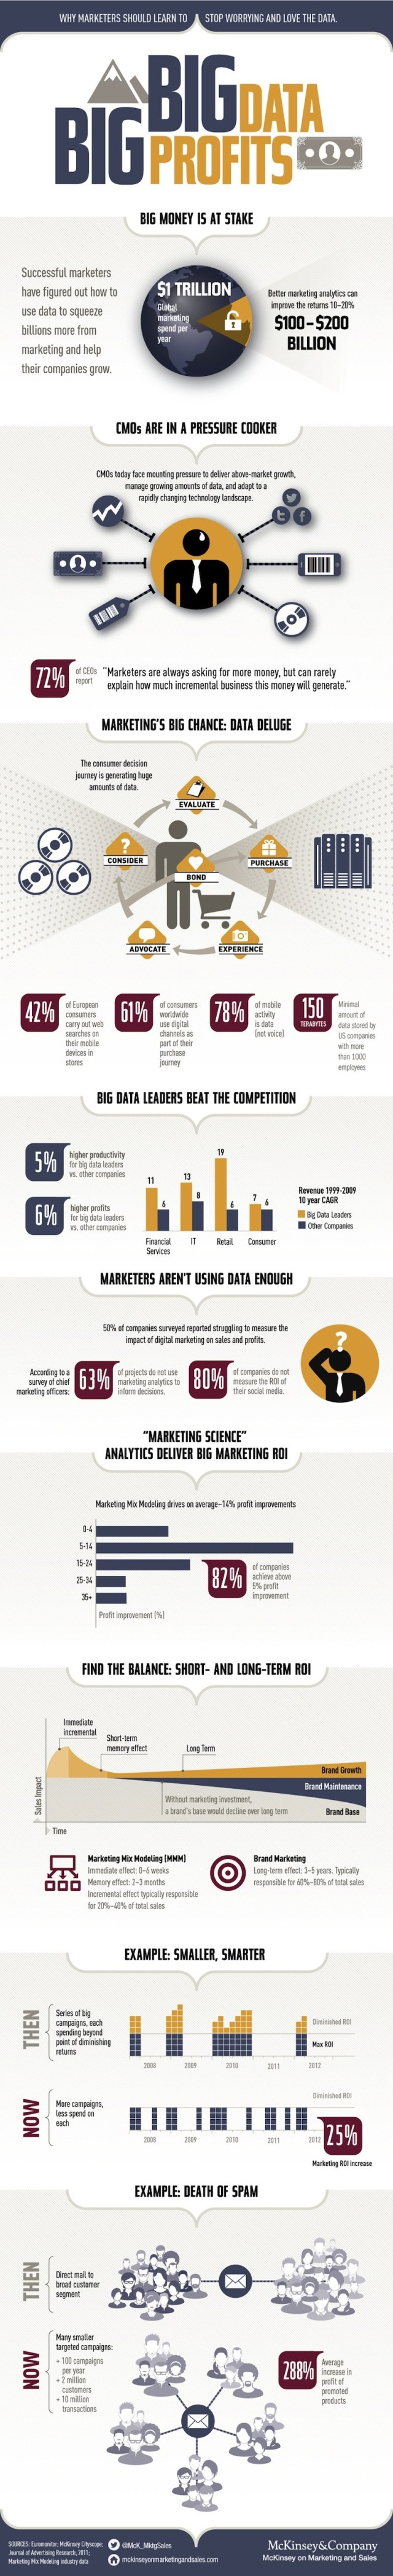 mckinsey big data infographic copy